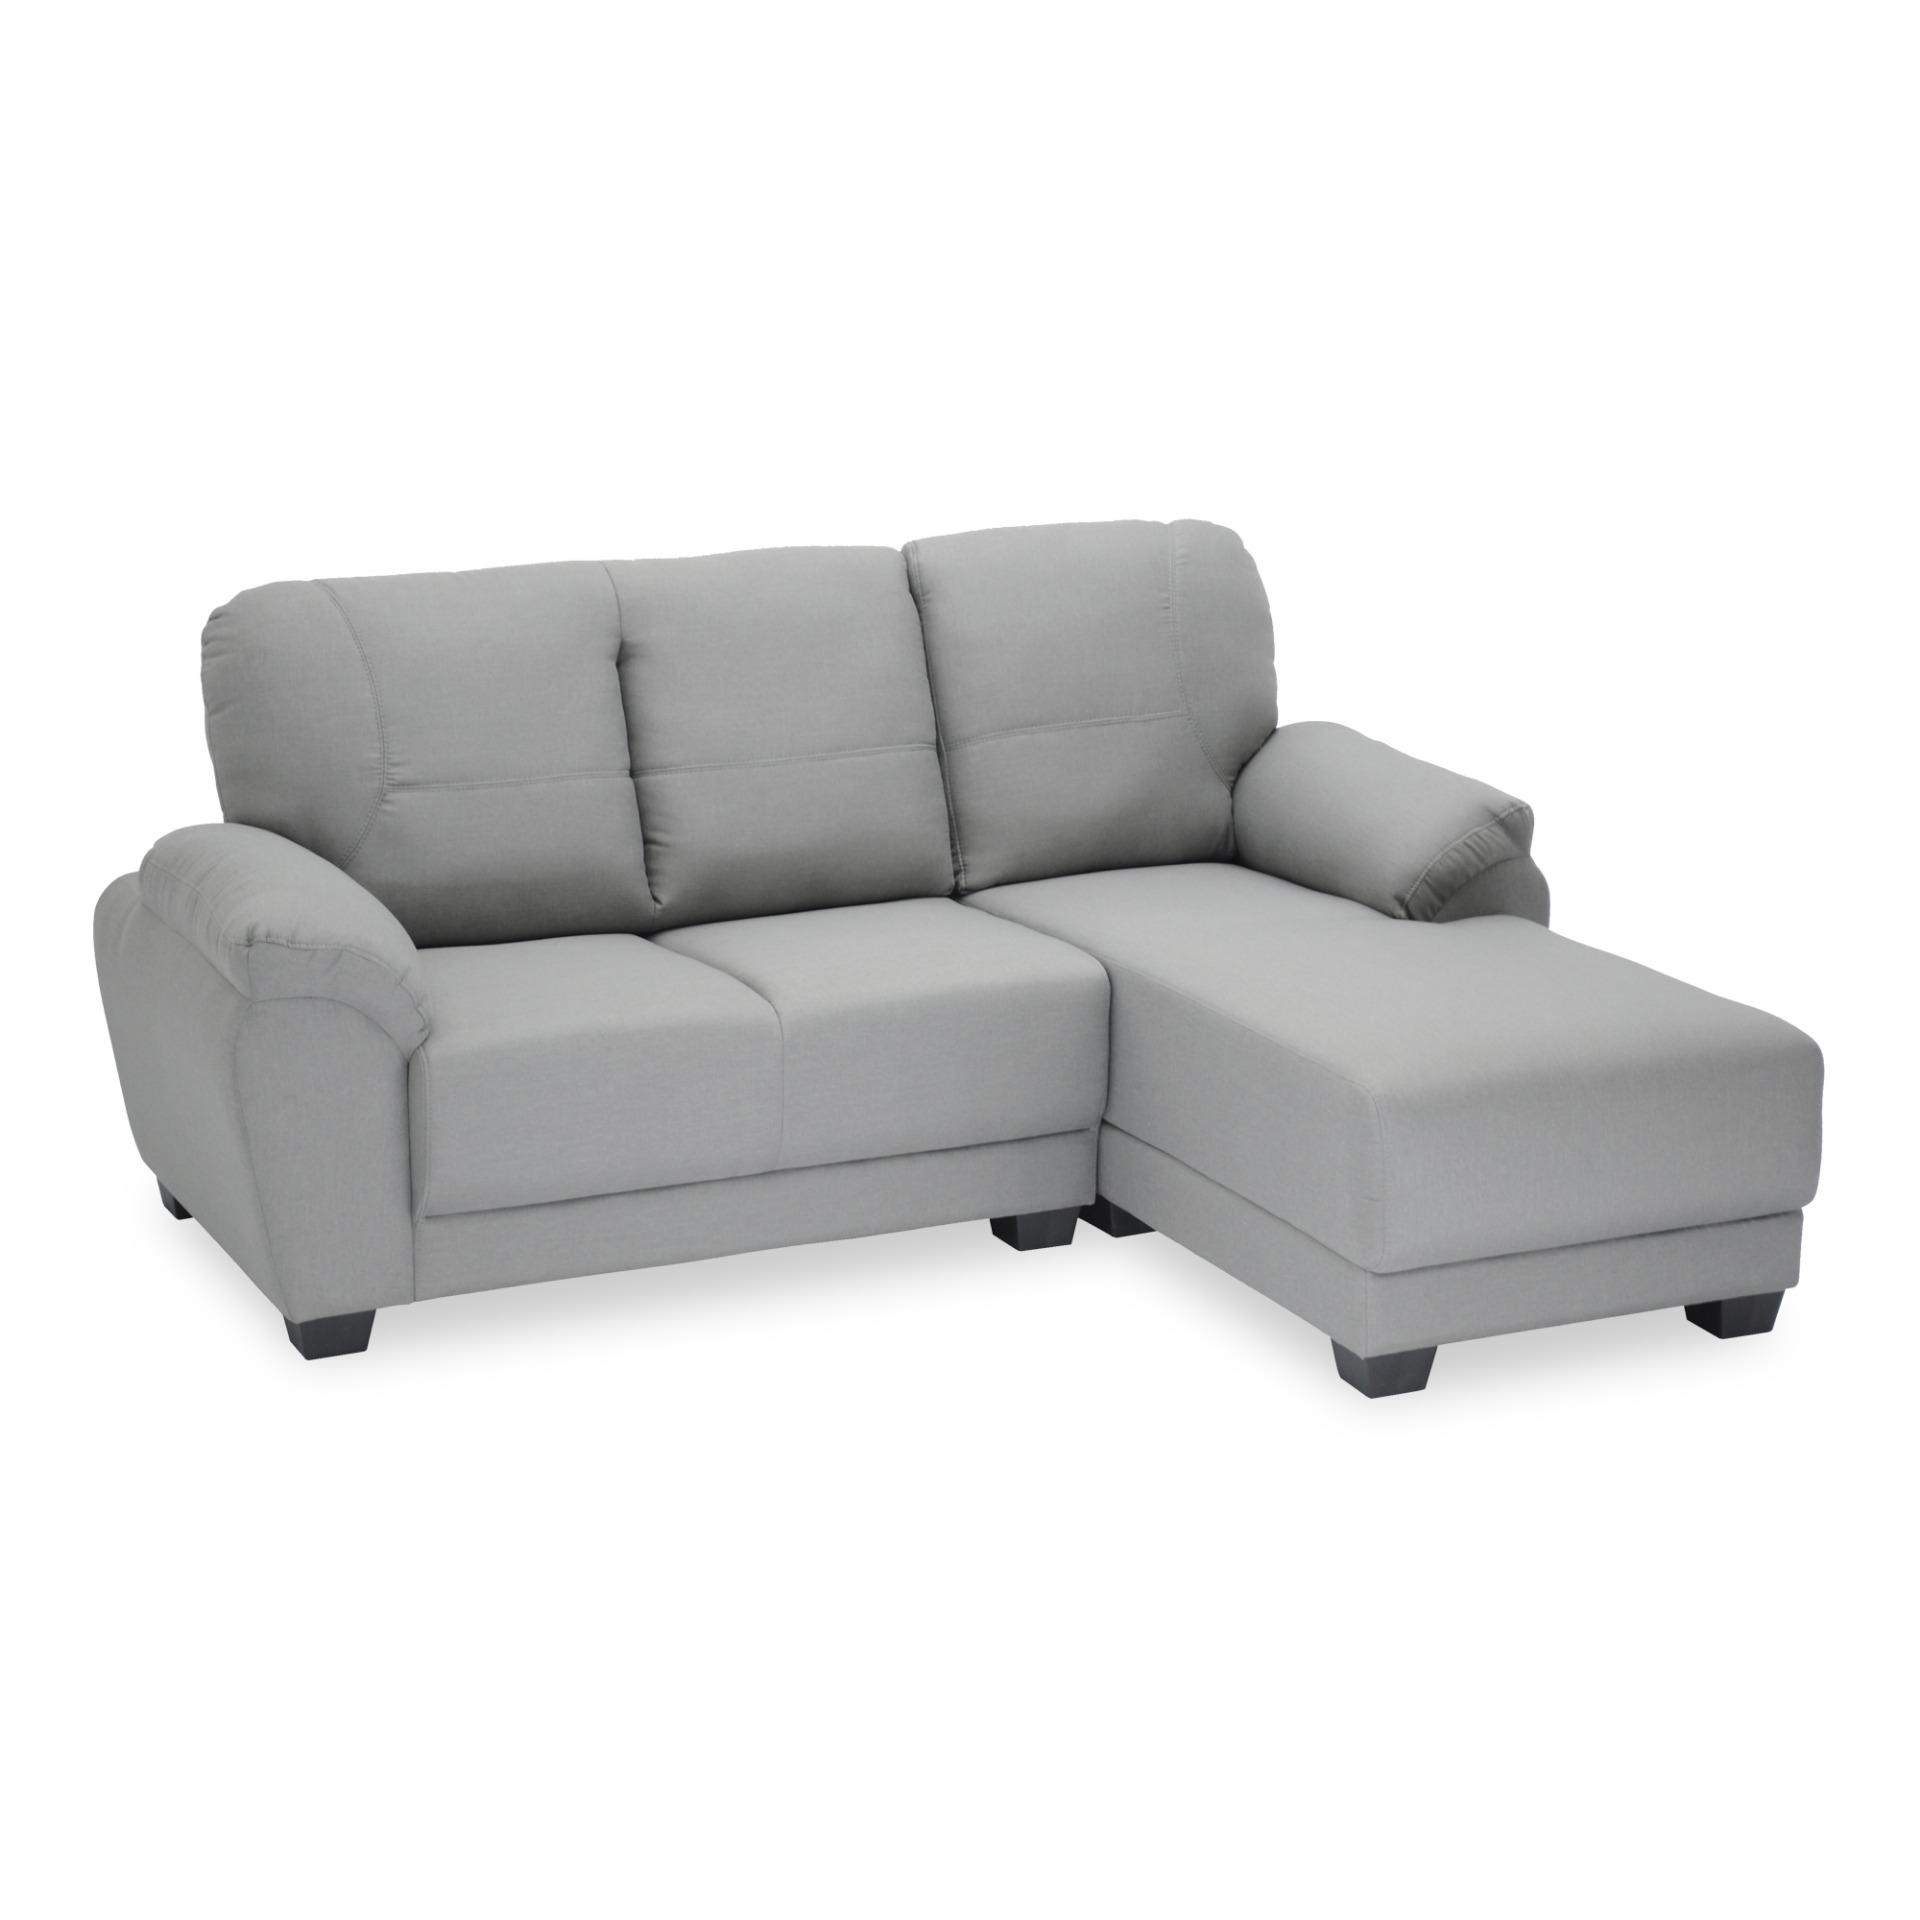 Dario 2 Seater L-Shape PVC Sofa (FREE DELIVERY)(FREE ASSEMBLY)